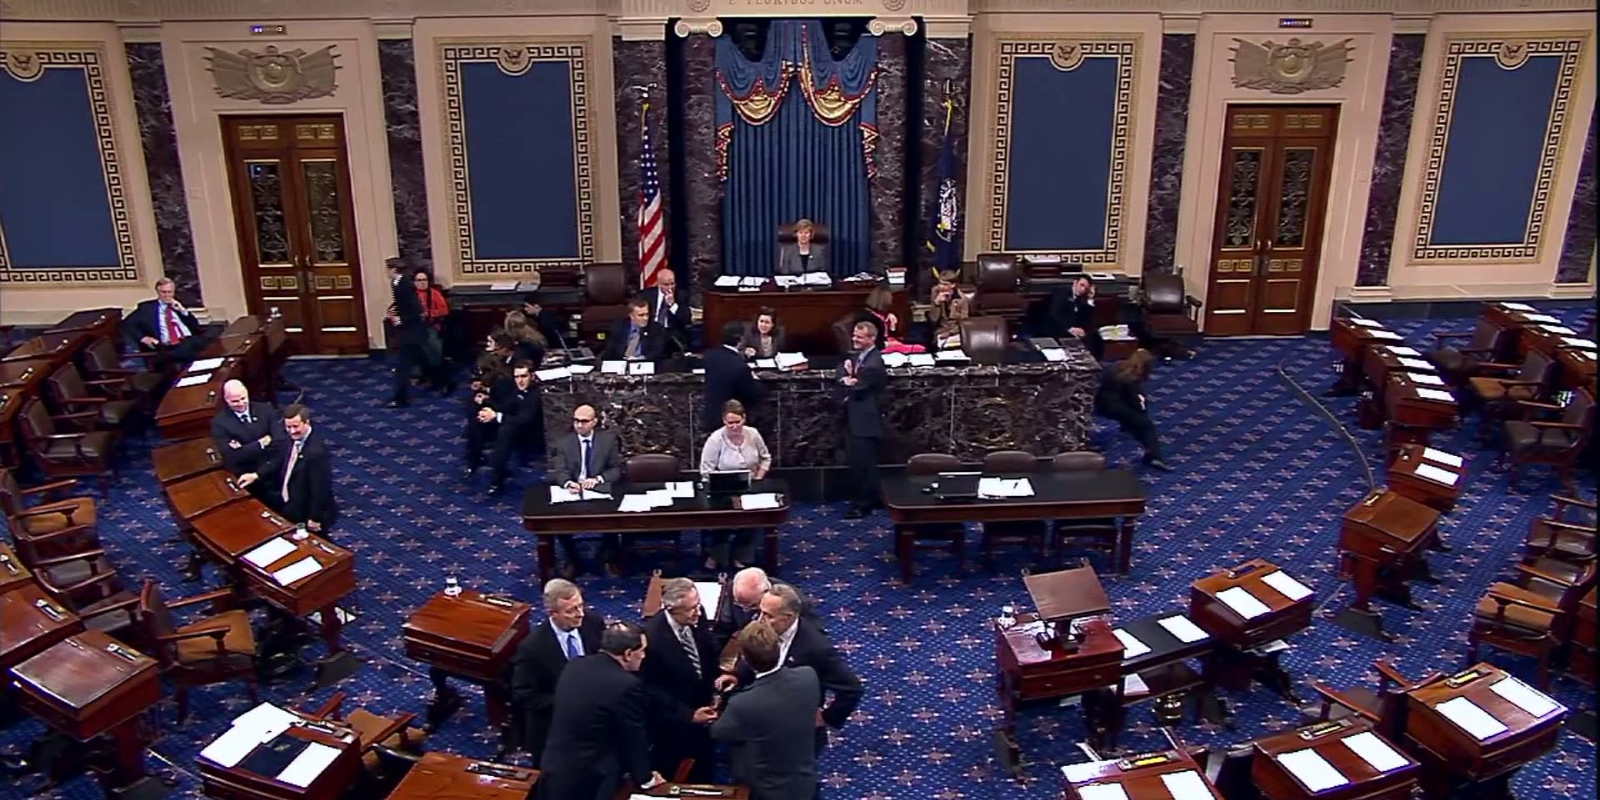 BREAKING: Senate in 'chaos' as Senate votes to hear witnesses, then backtracks